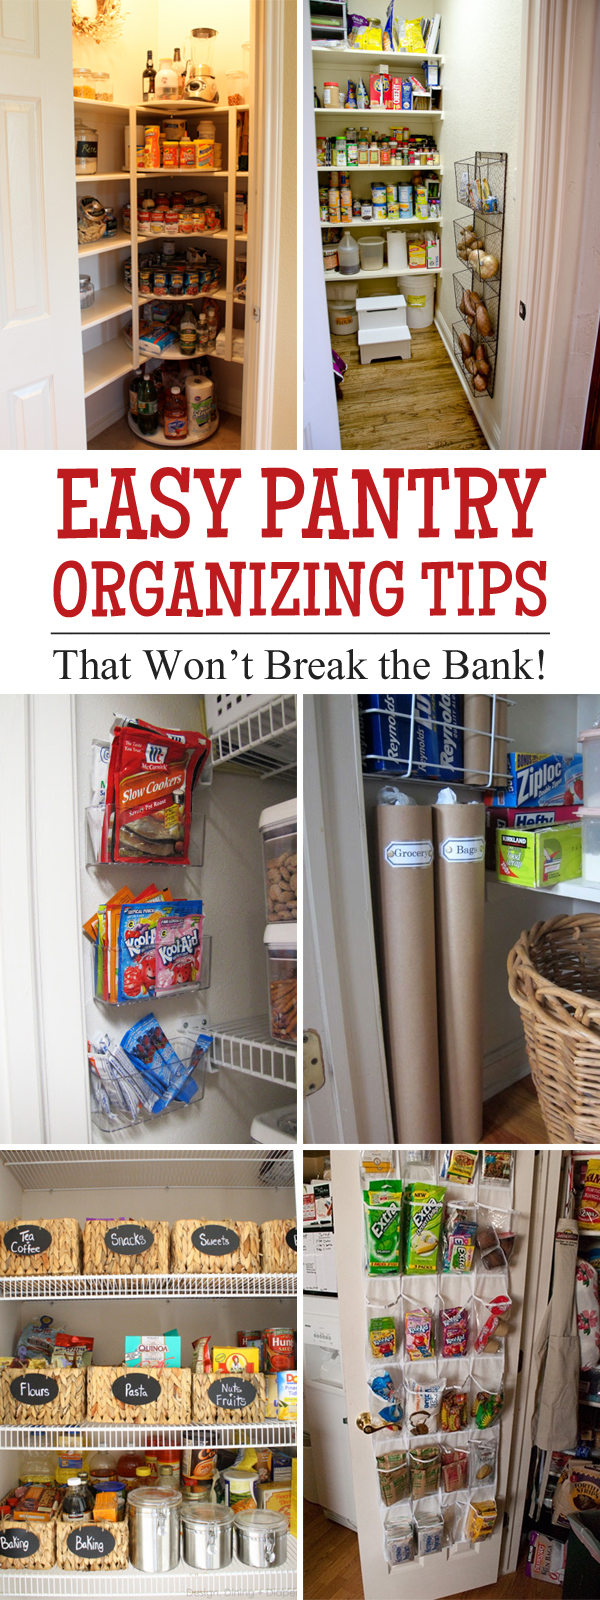 Easy Pantry Organizing Tips That Won't Break the Bank